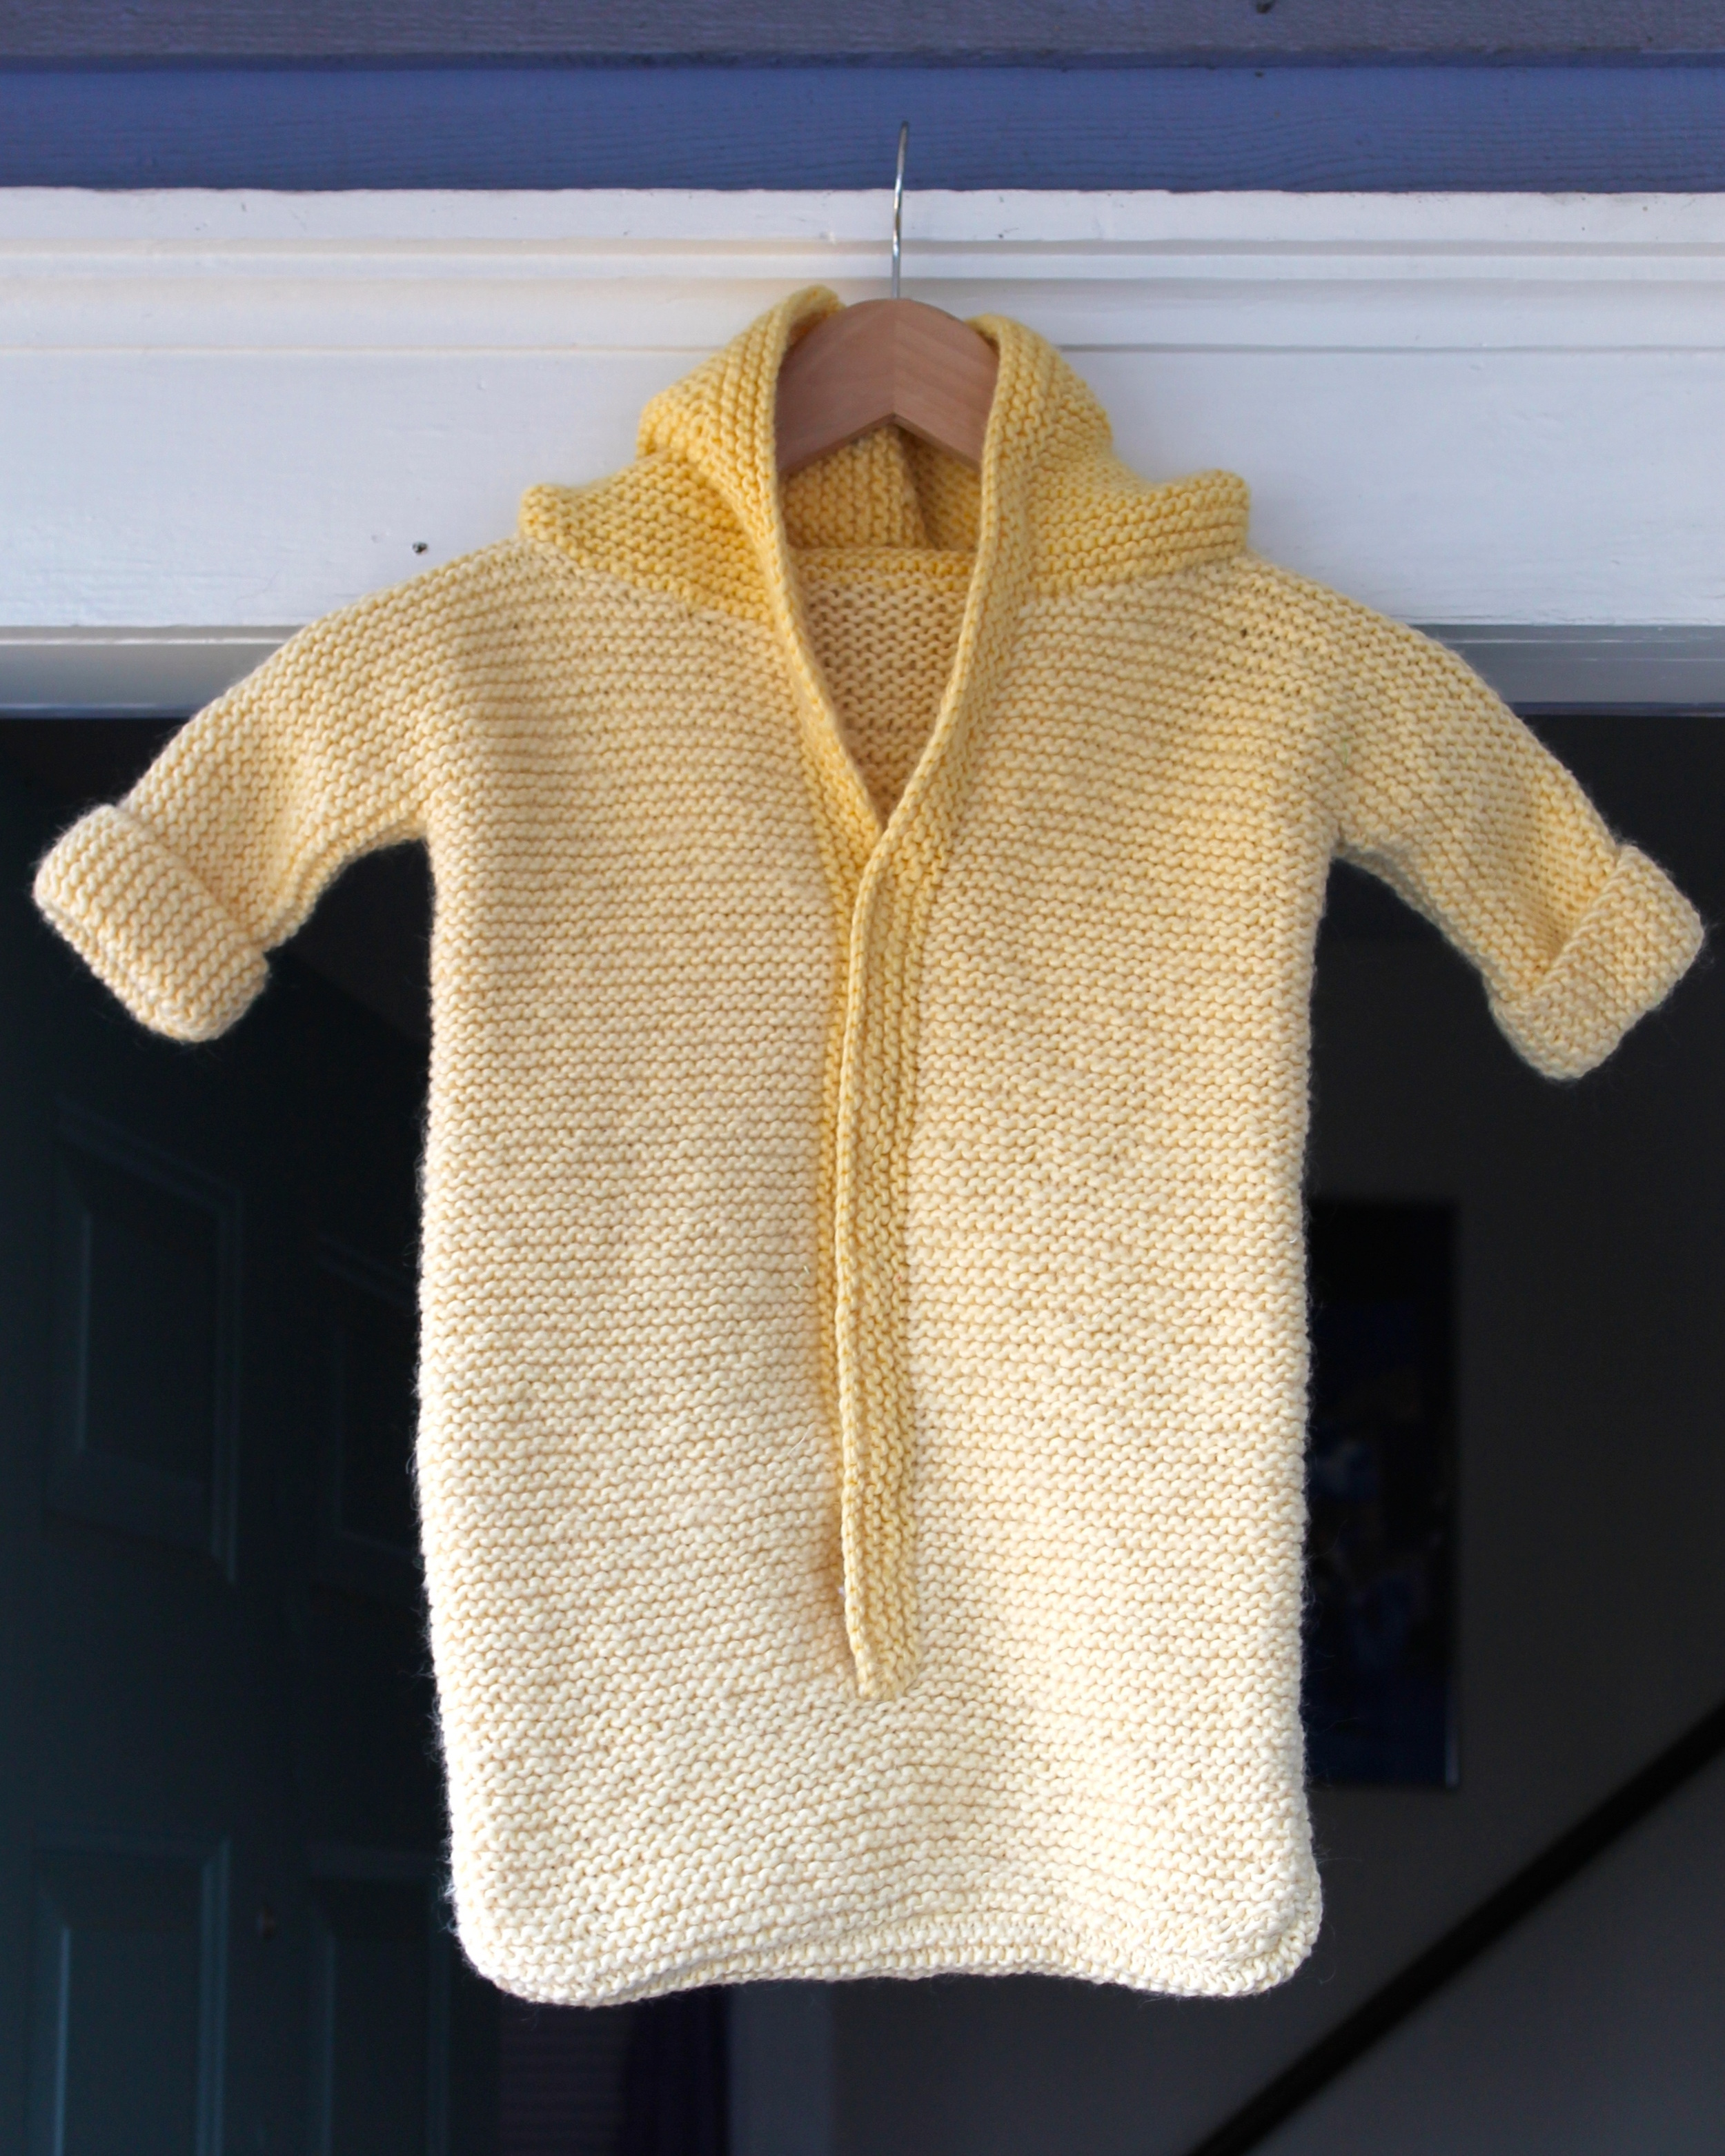 Baby sleep sack made from yellow wool